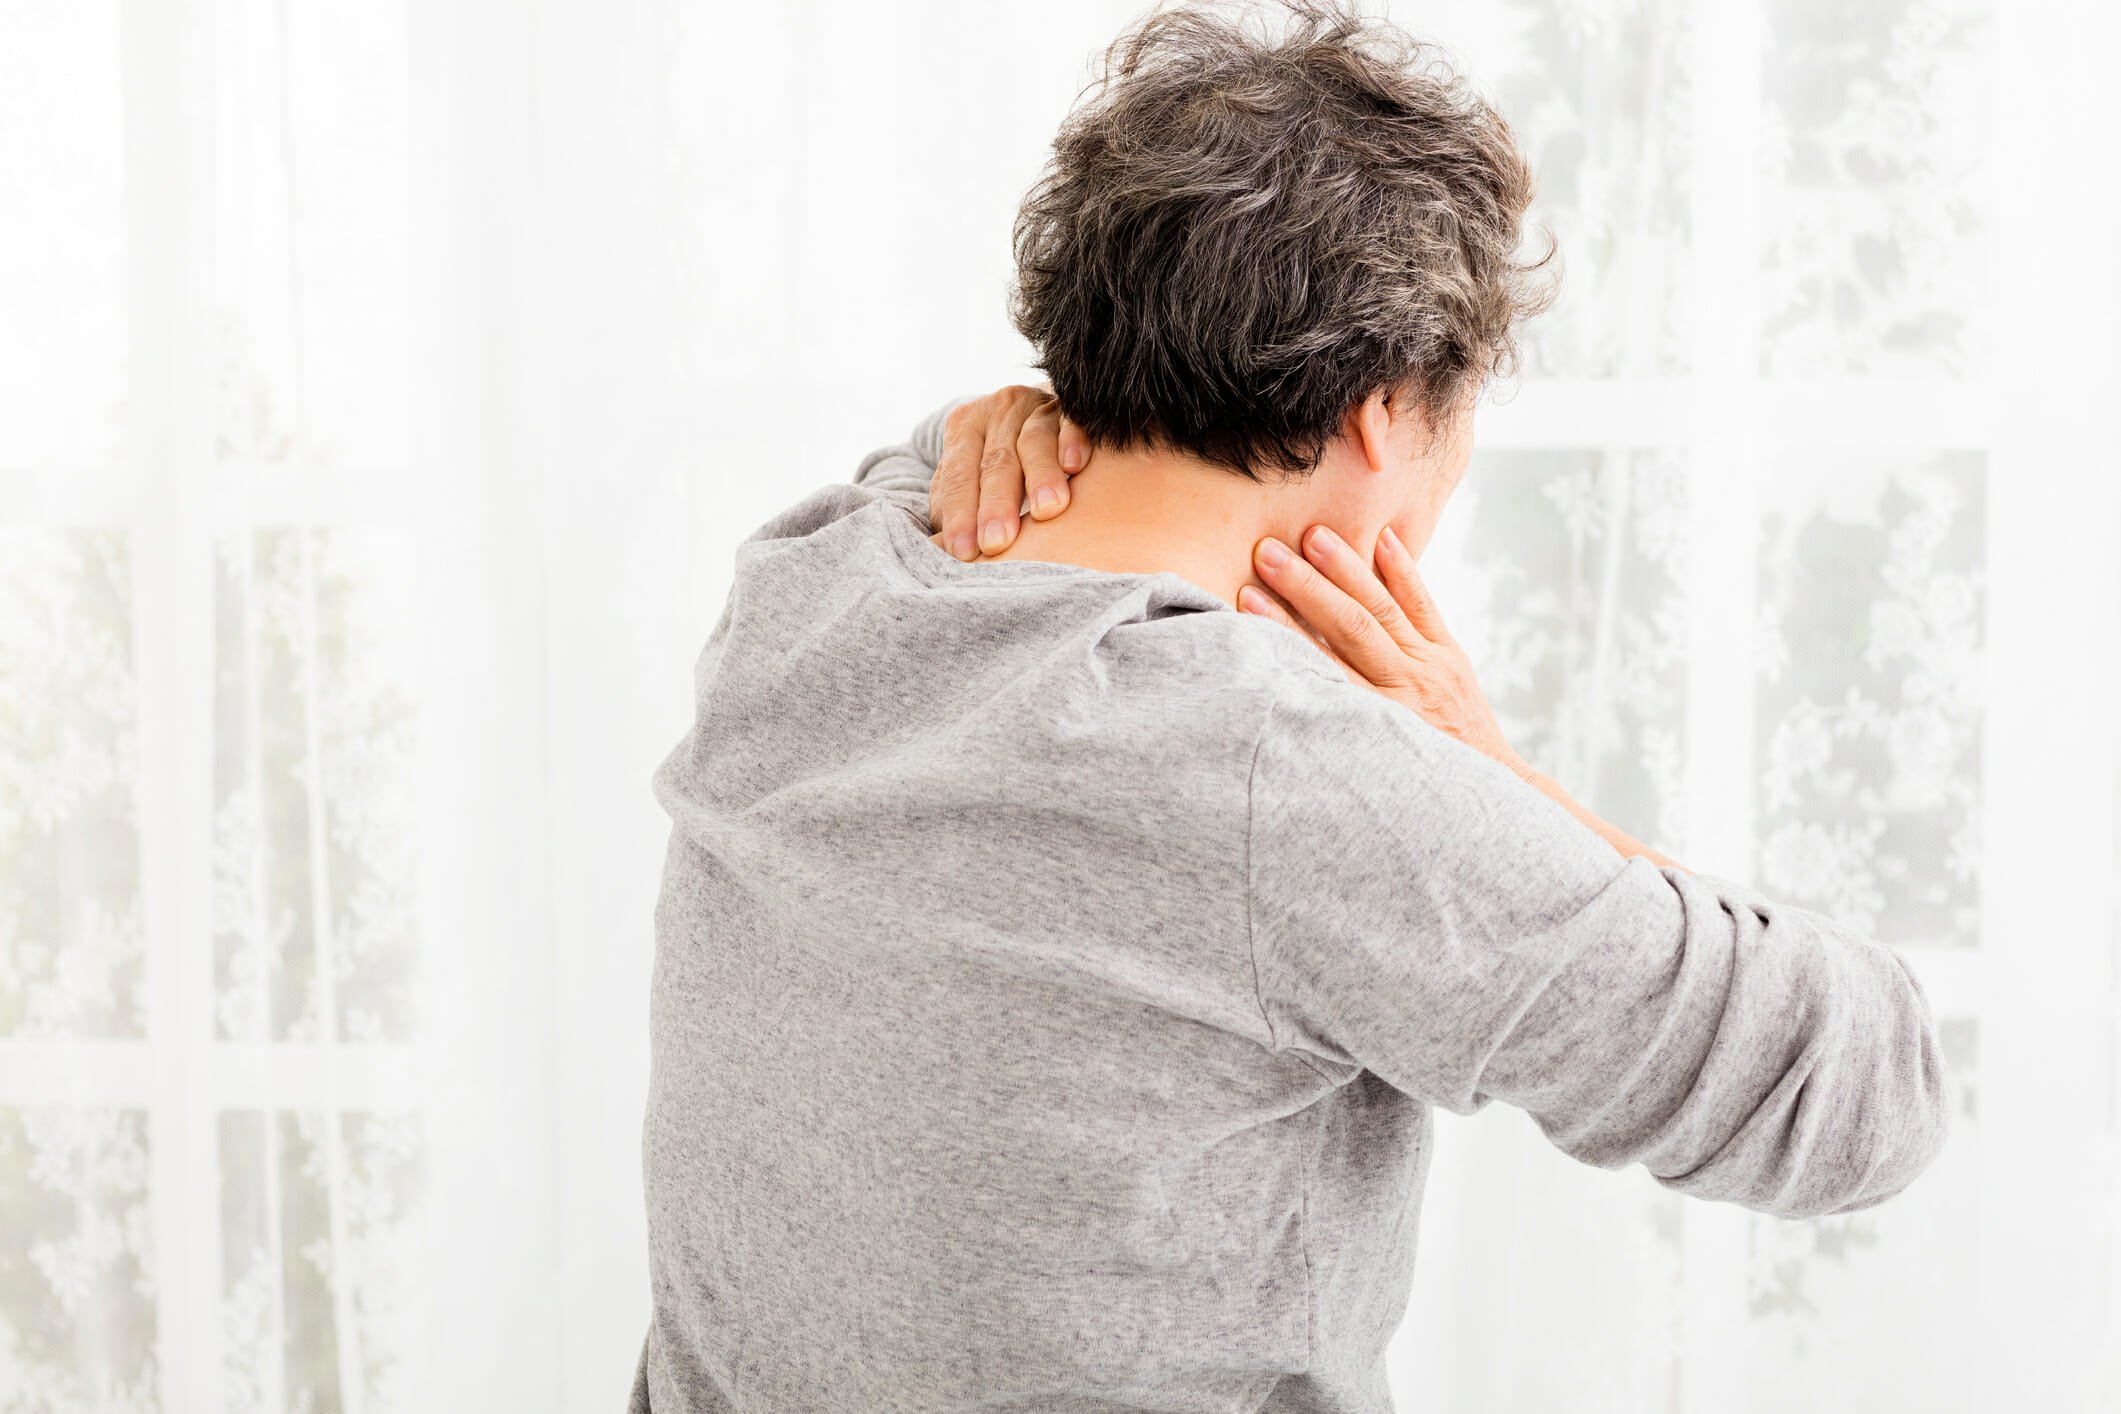 Chronic Pain and Physical Therapy